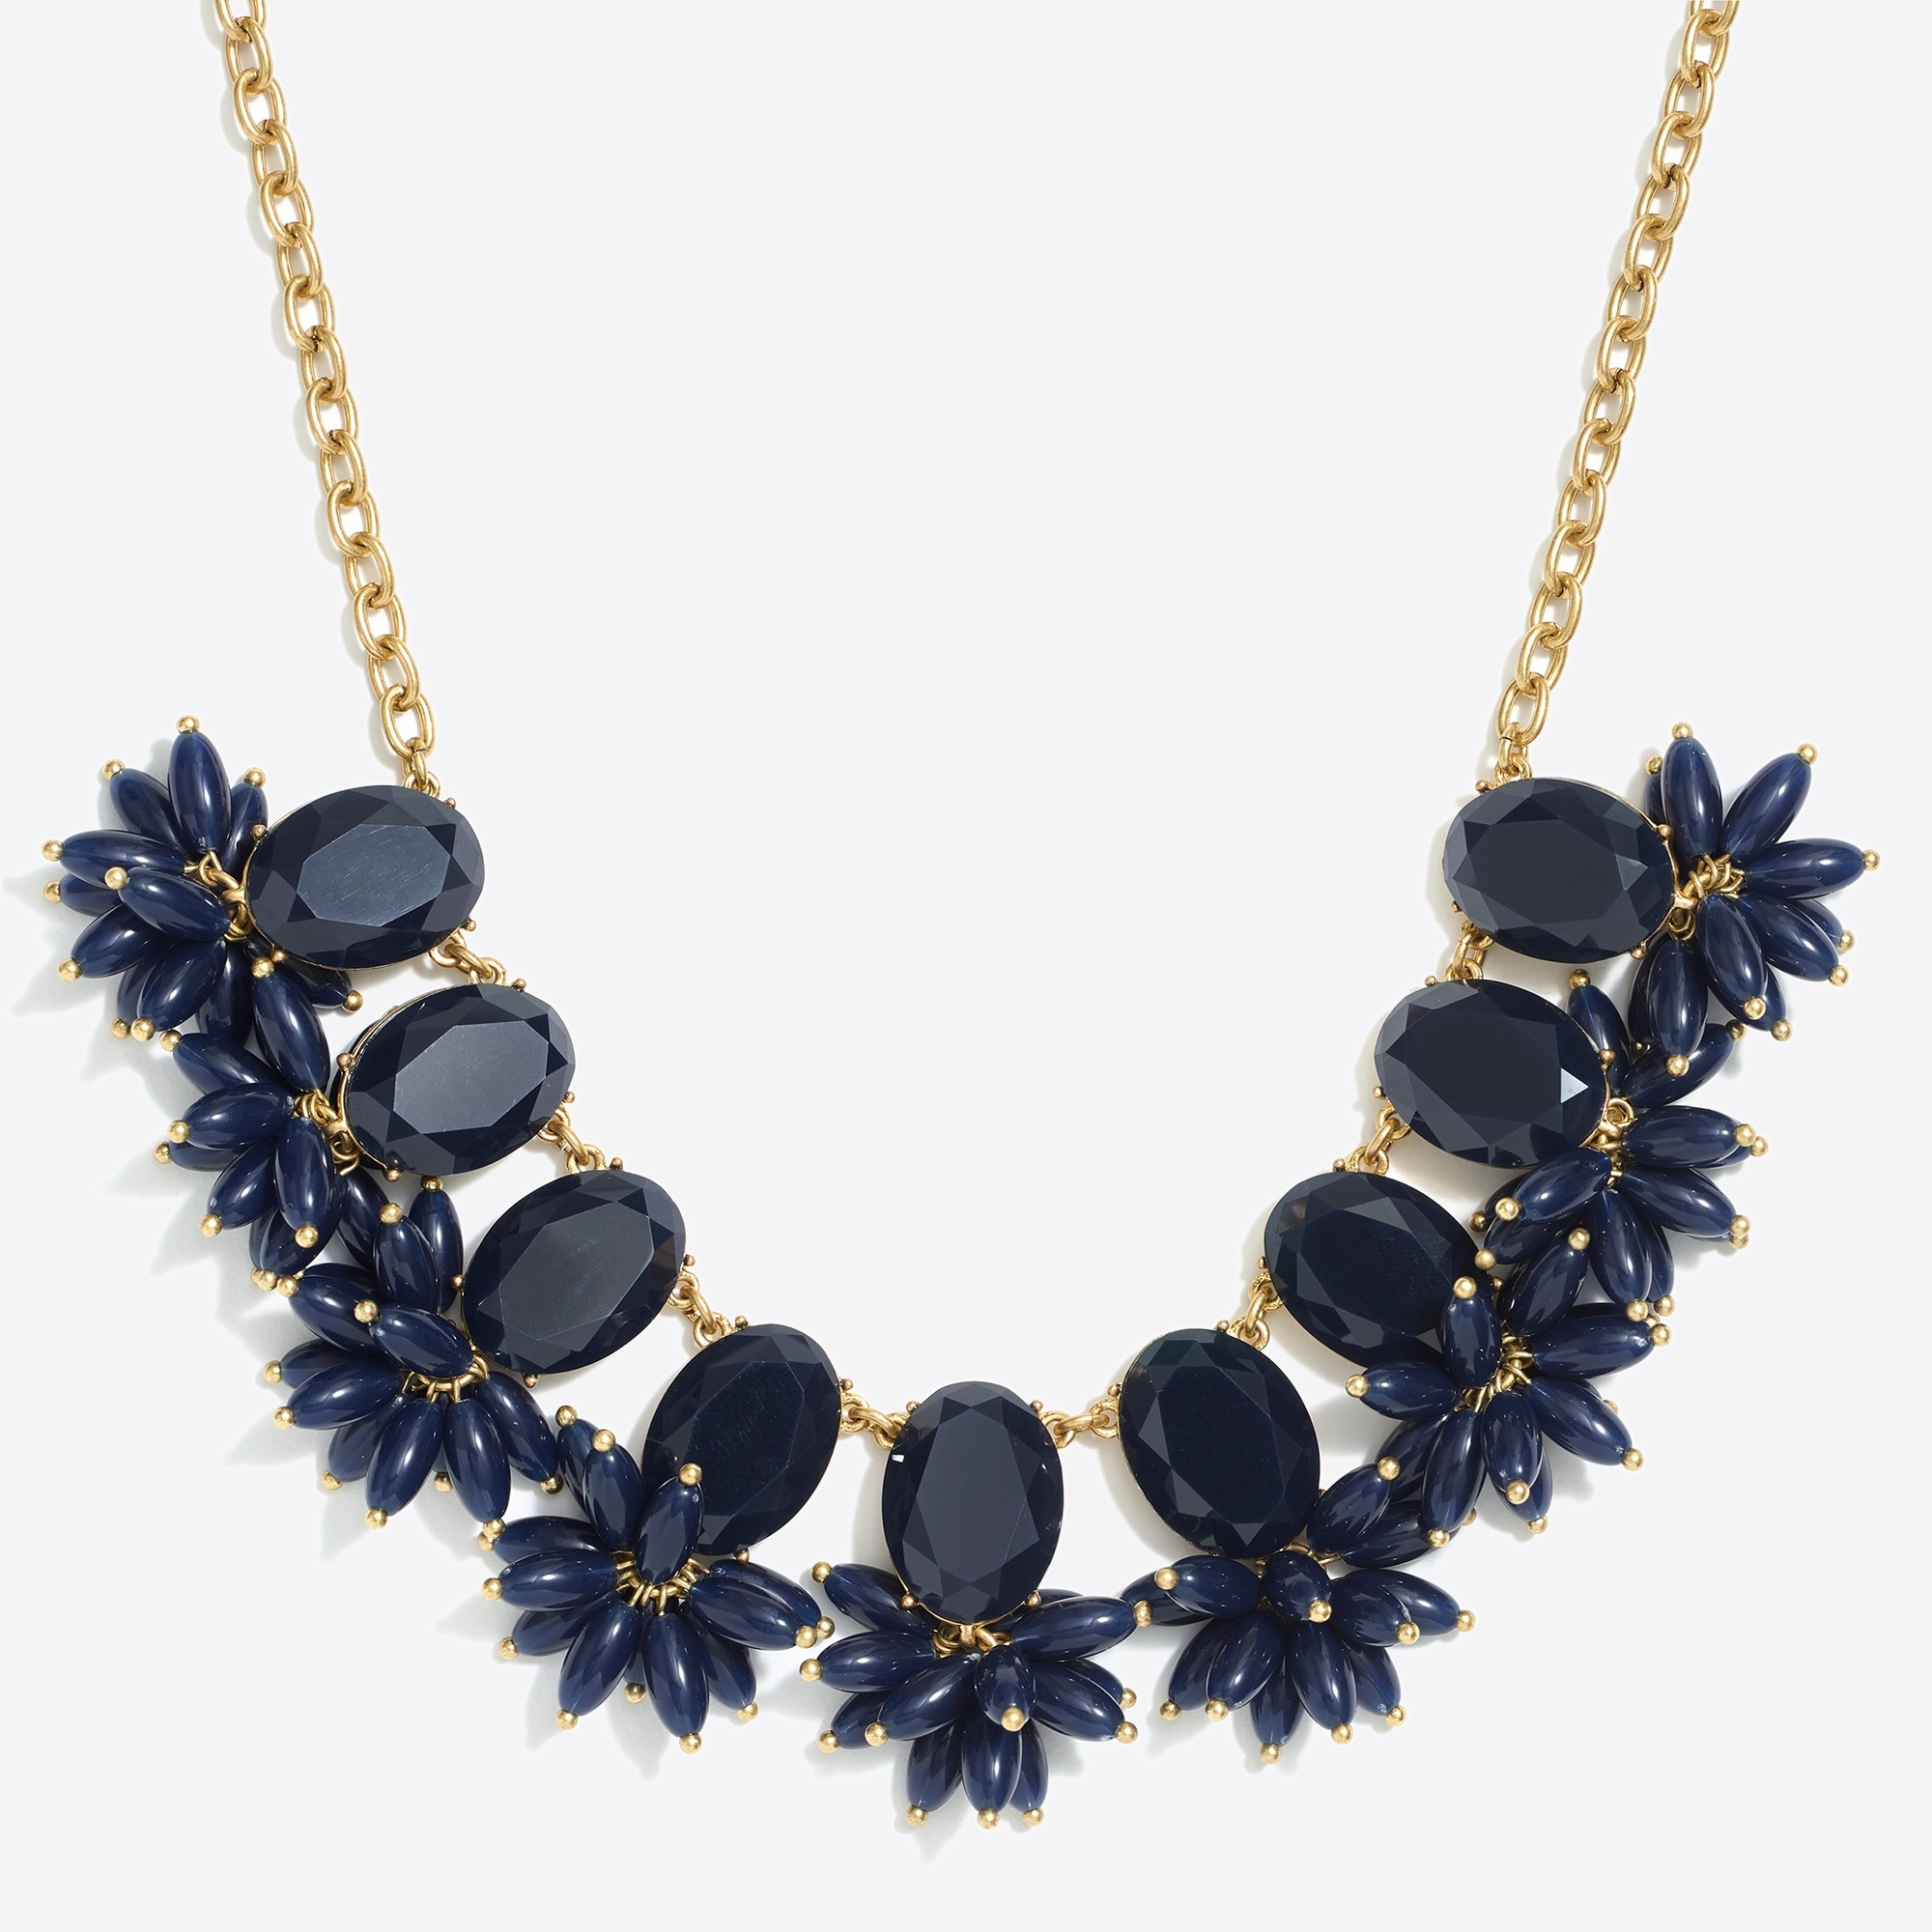 Image 1 for Bursting beads statement necklace